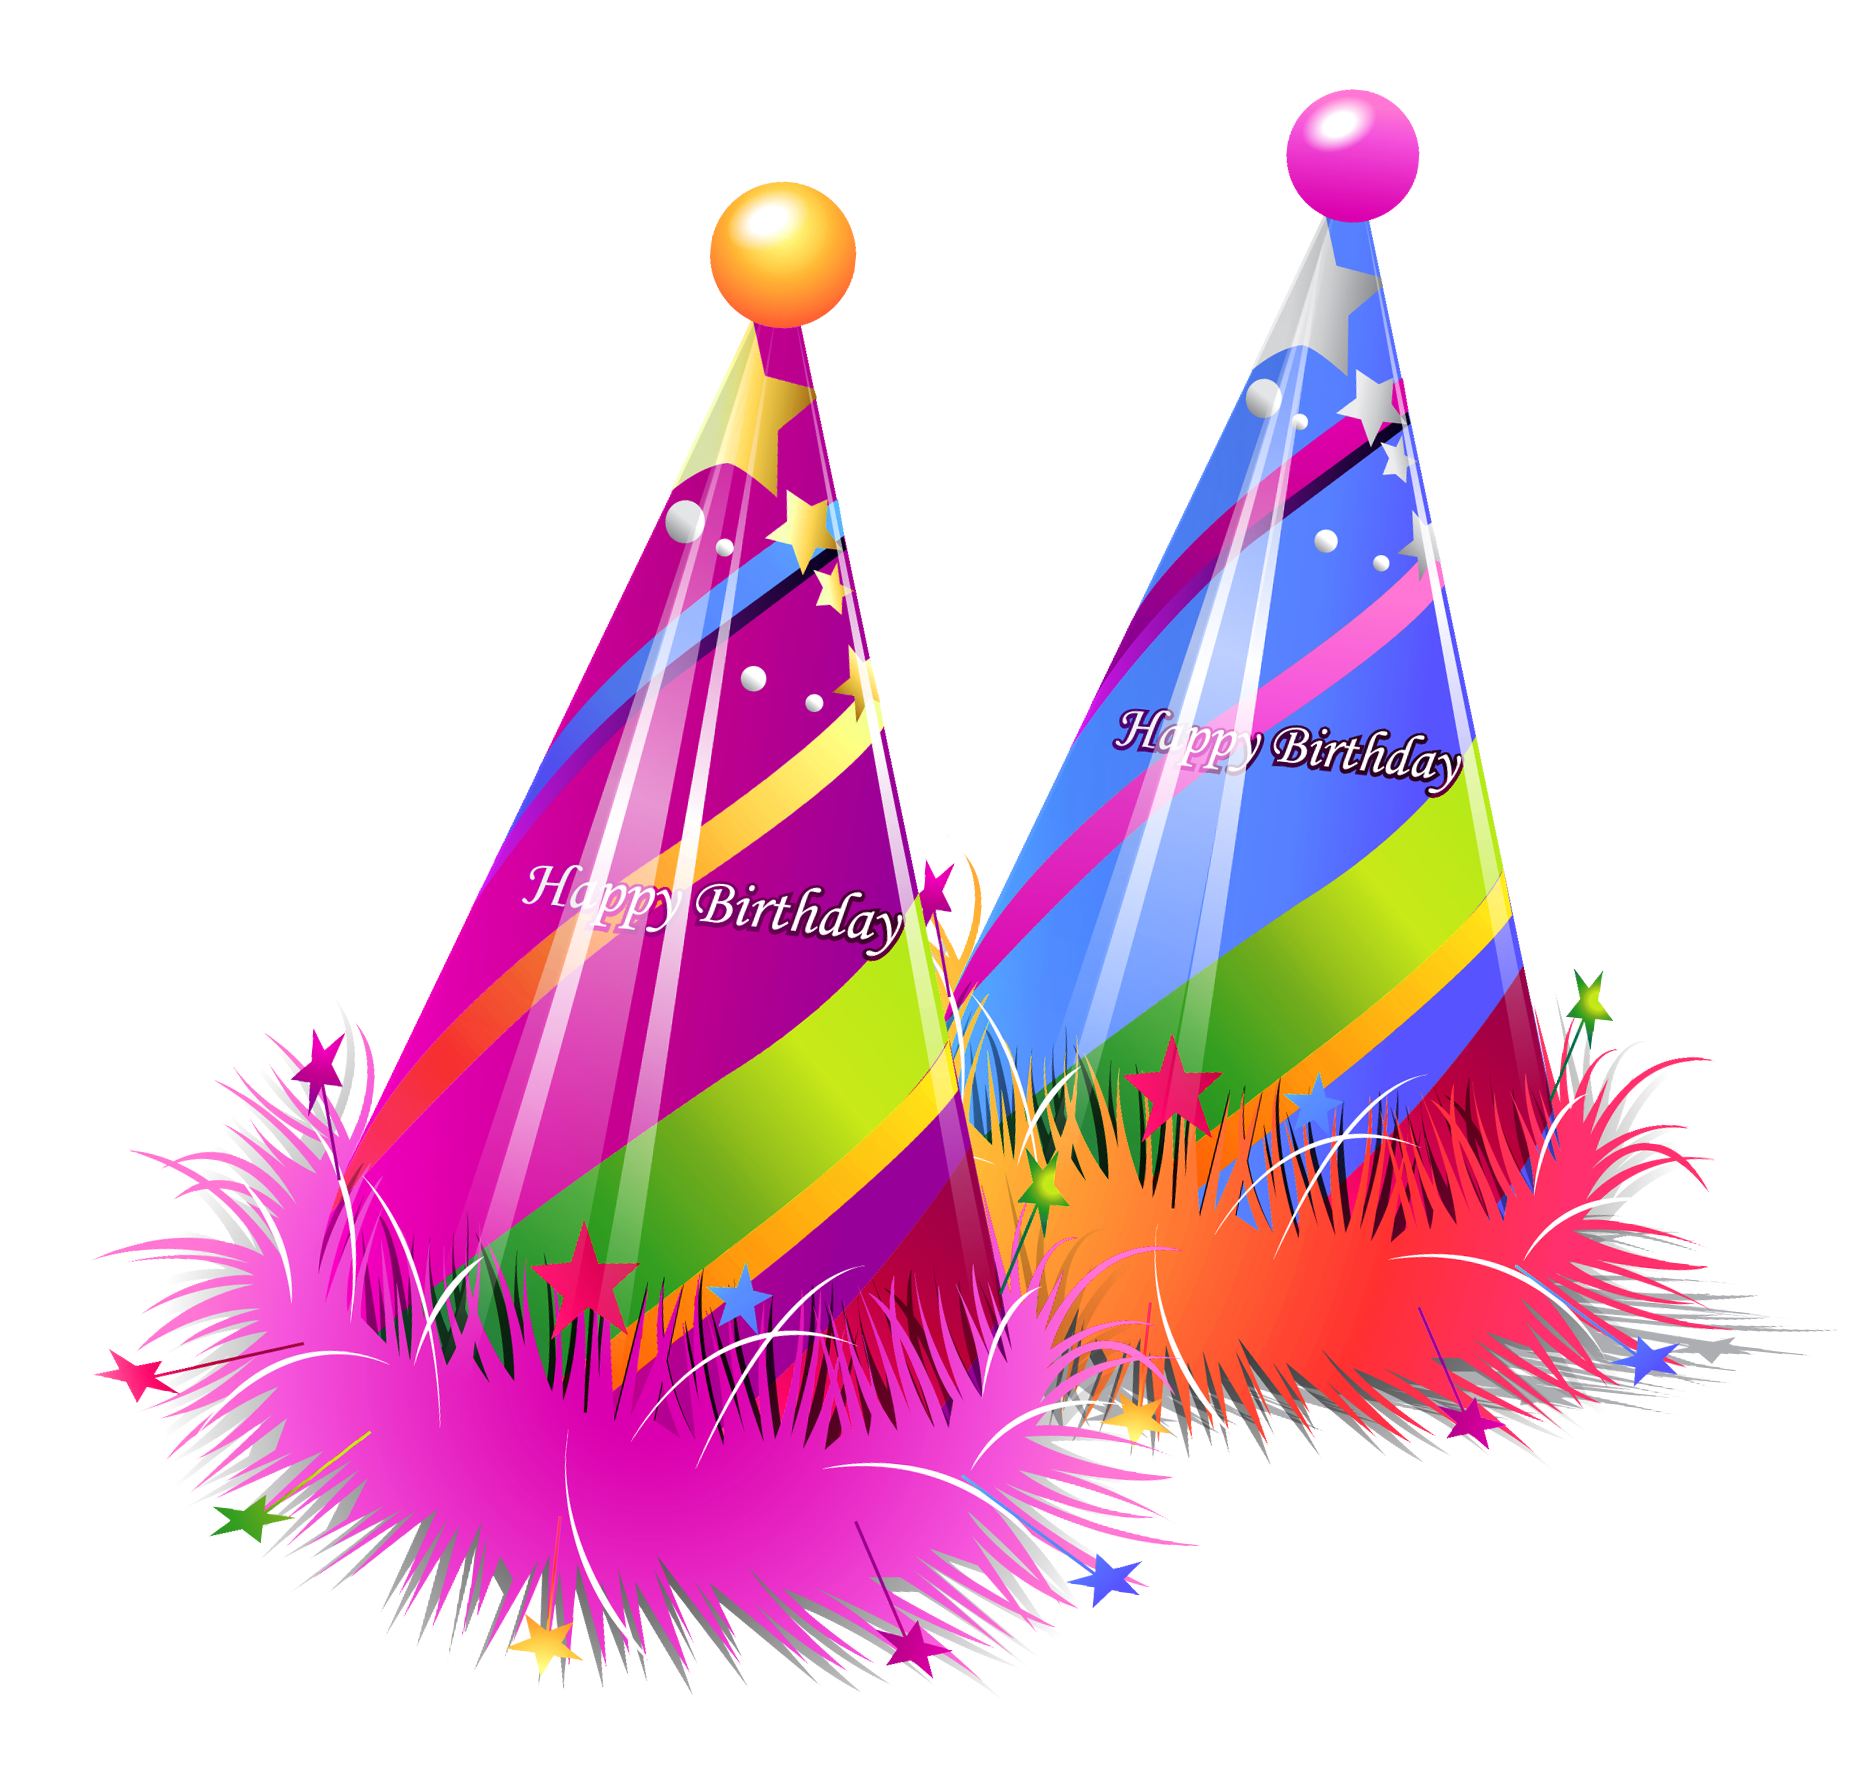 Happy Birthday Icon Png image #10210